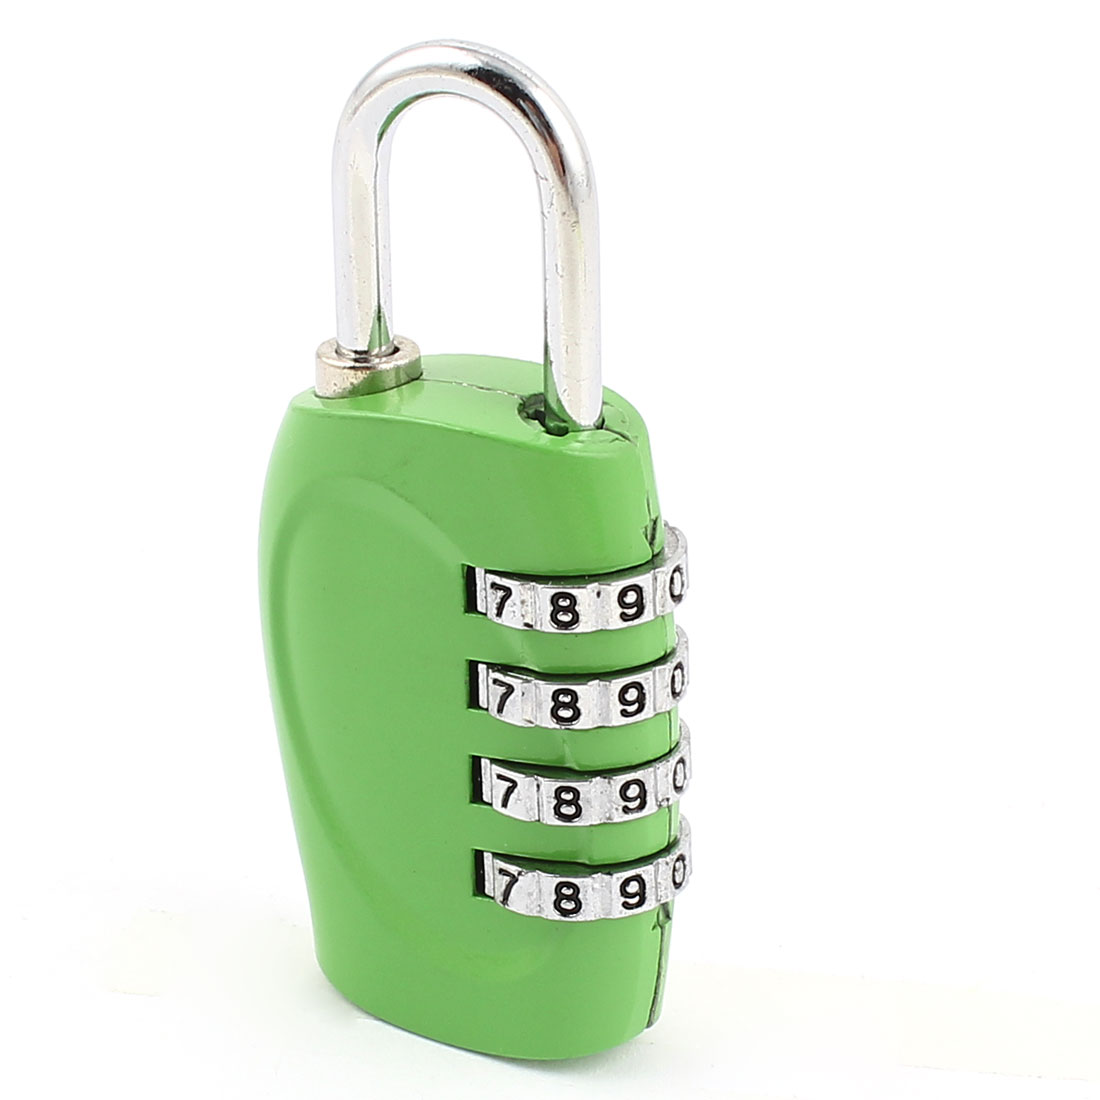 Backpack Bag 4 Digits Combination Dial Lock Password Safety Padlock Green